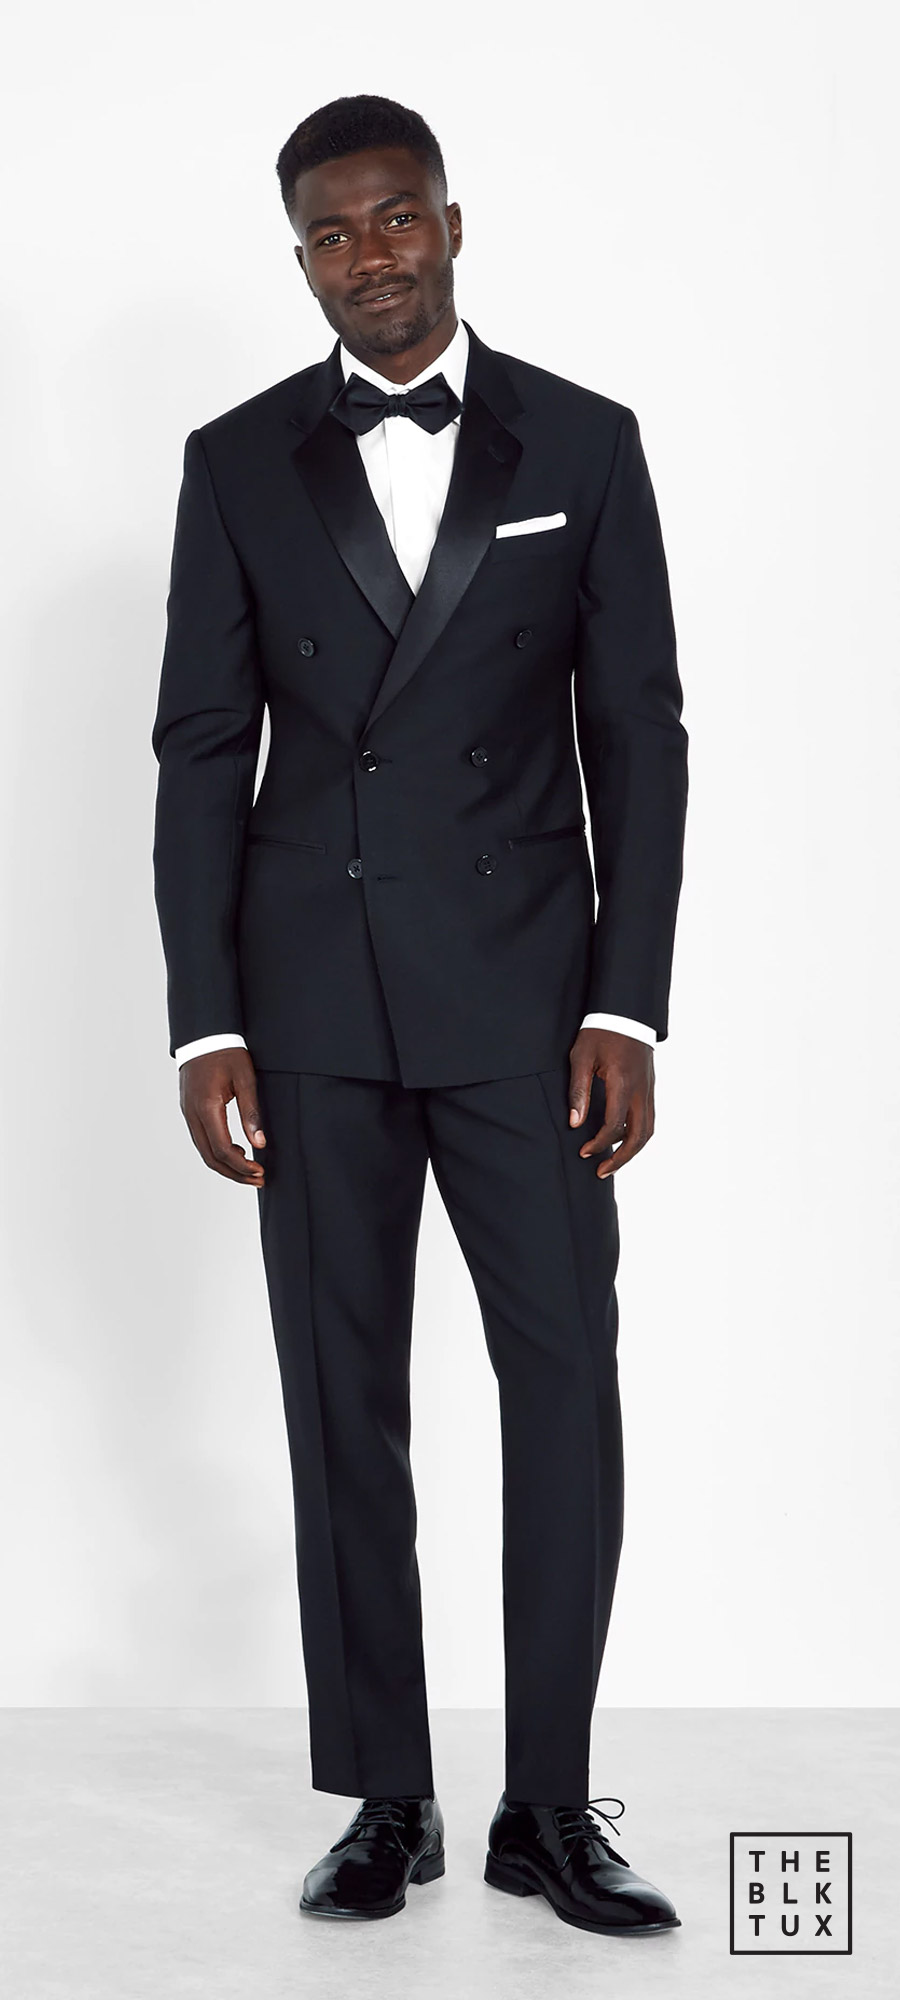 the black tux 2017 online tuxedos rental service double breasted tuxedo groommen best man style